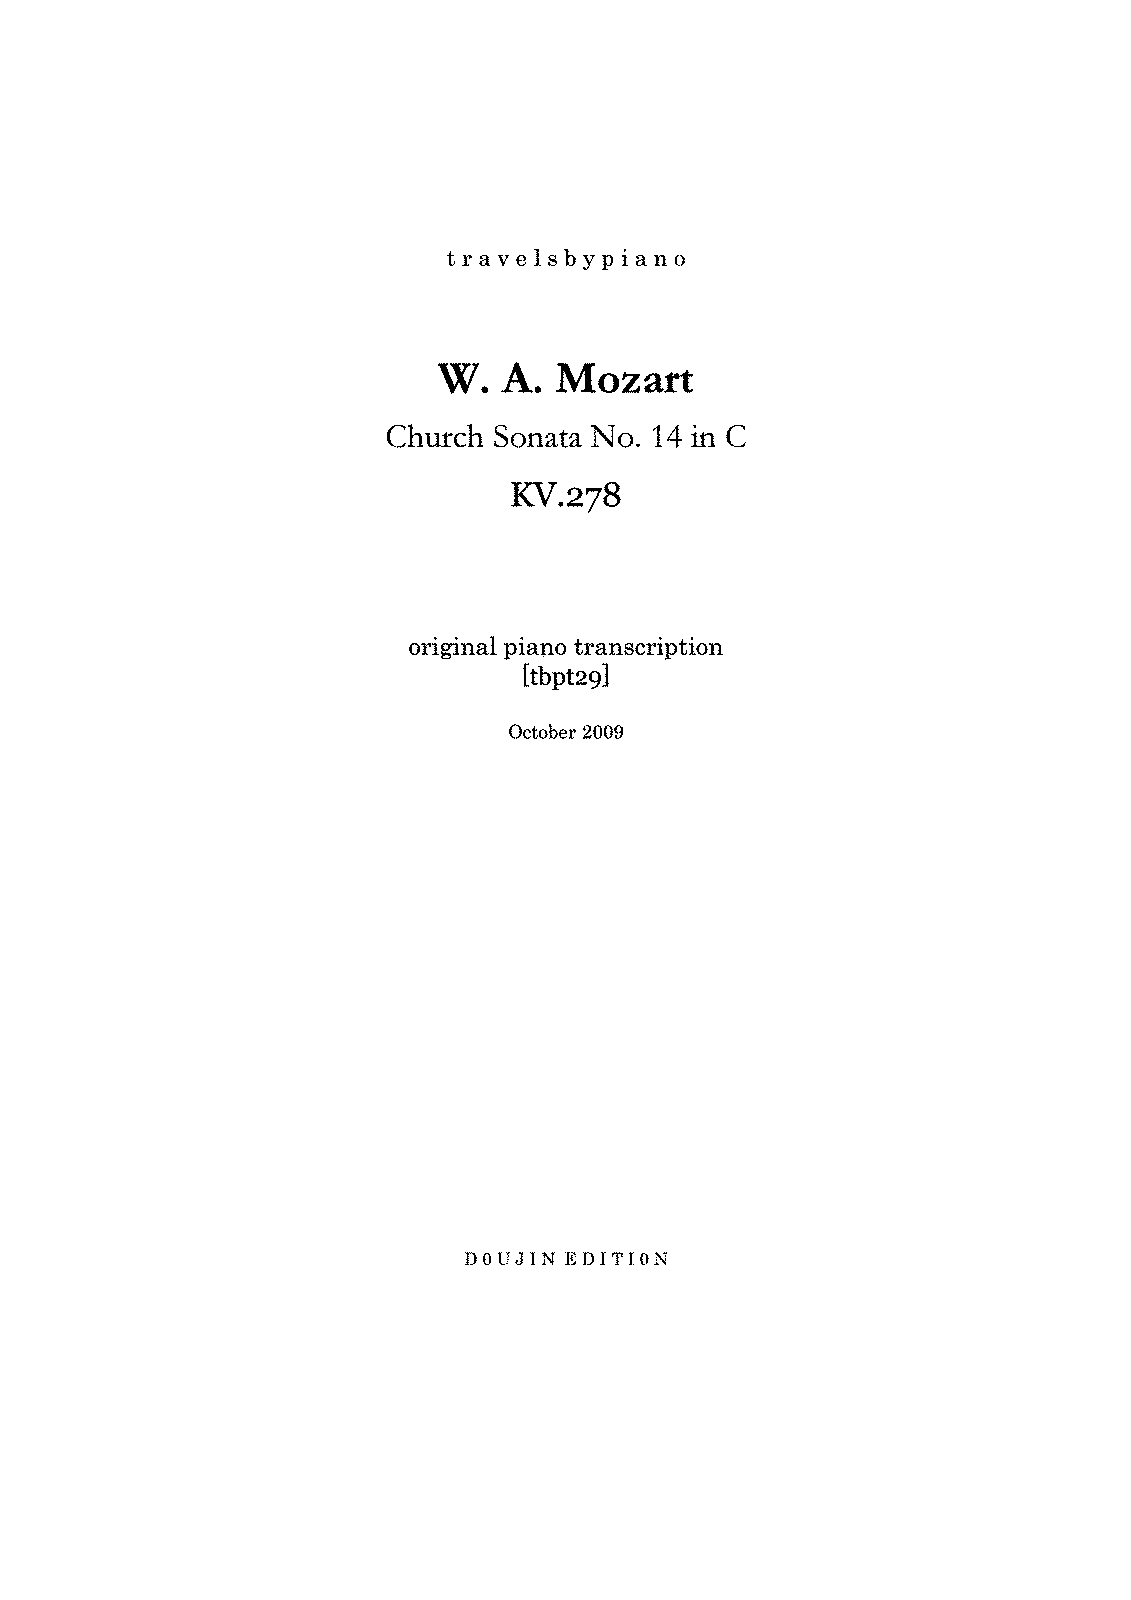 PMLP78294--travelsbypiano- tbpt29 W.A.Mozart Church Sonata No.14 in C KV.278 piano transcription -19FC6F7D-.pdf